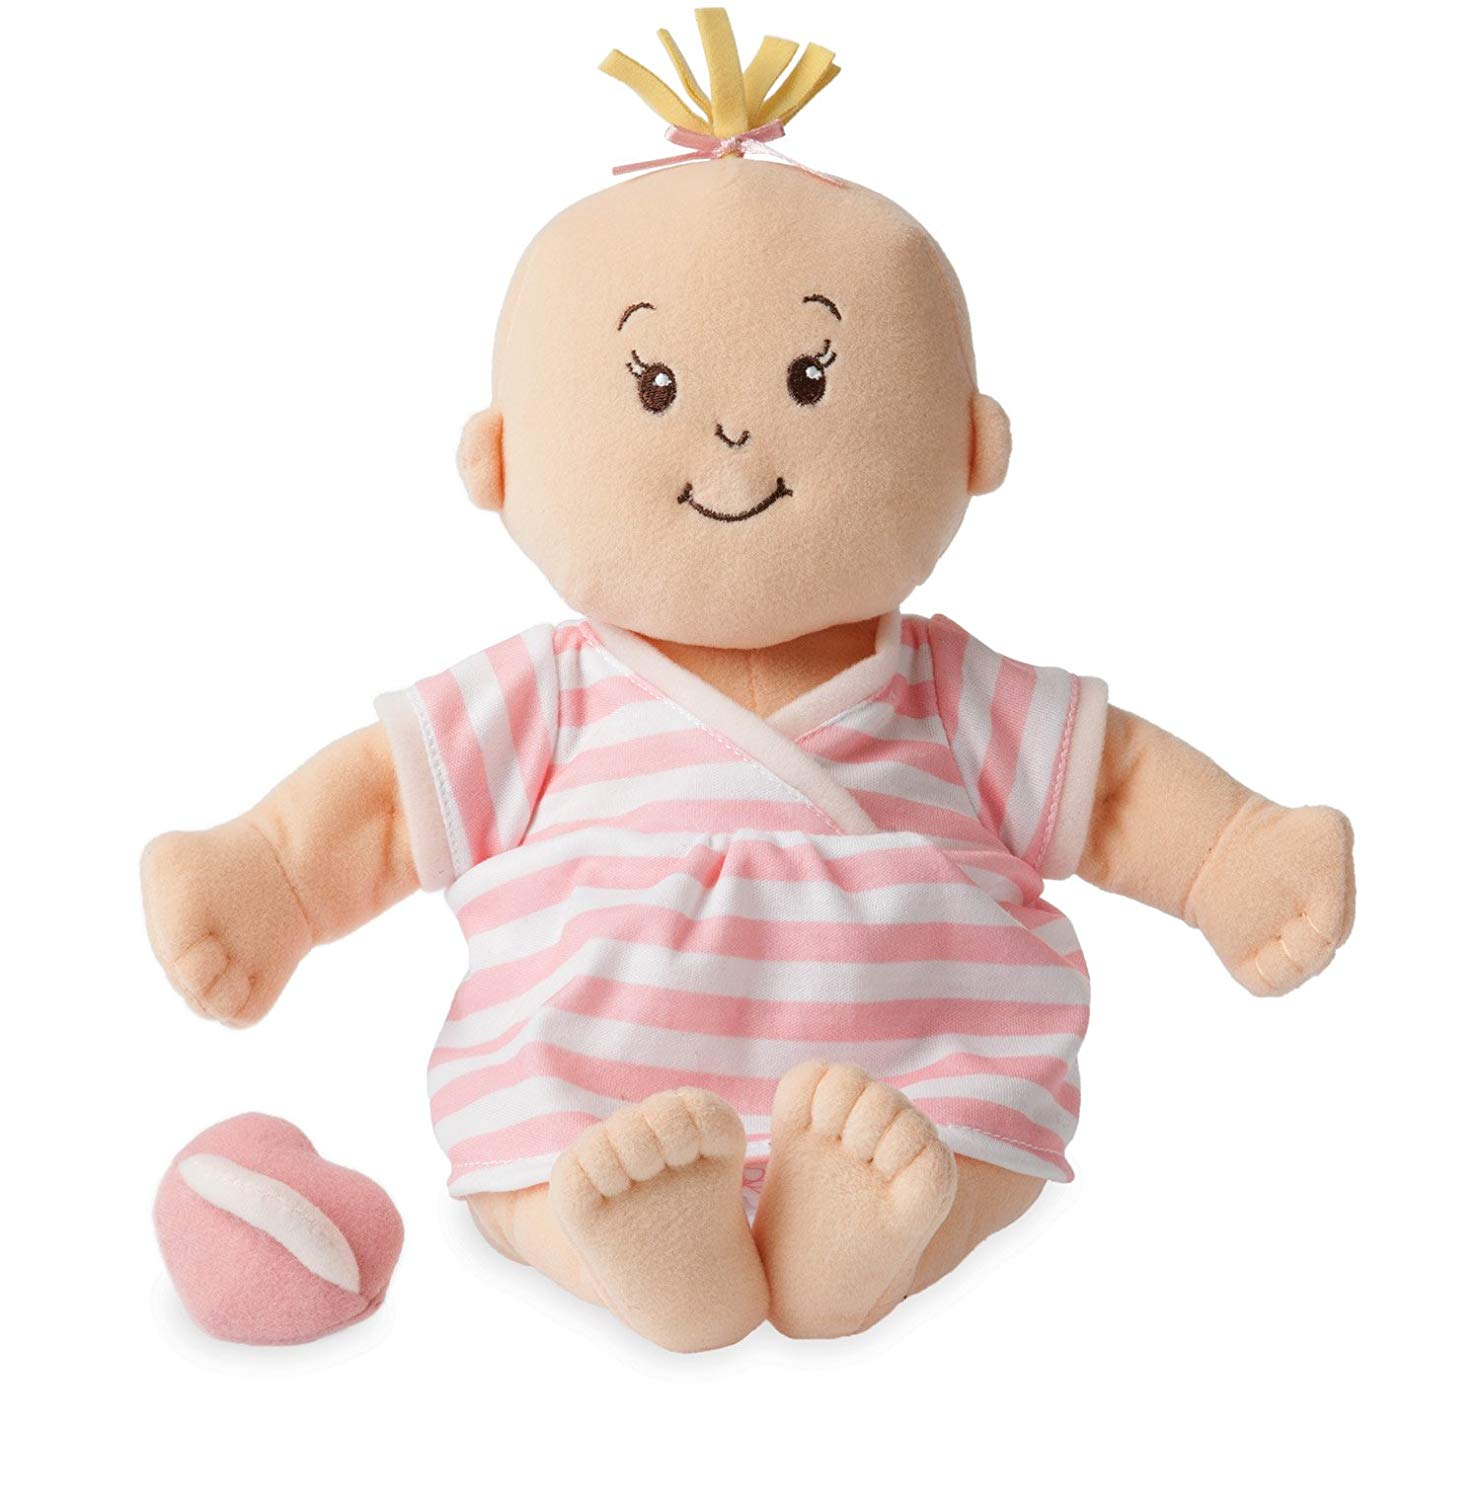 Baby Stella Peach Soft Nurturing First Baby Doll